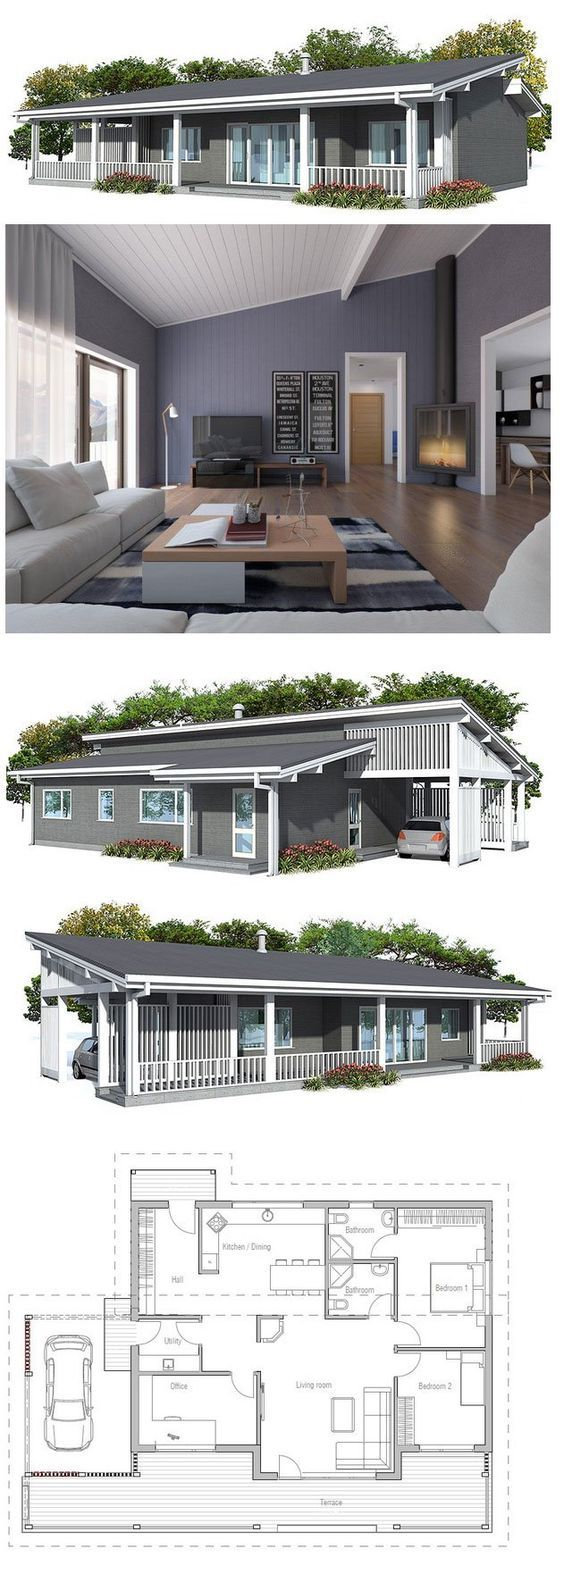 Small house plan in modern architecture, three bedrooms, suitable to small lot, spacious living room. Floor Plan from ConceptHome.com